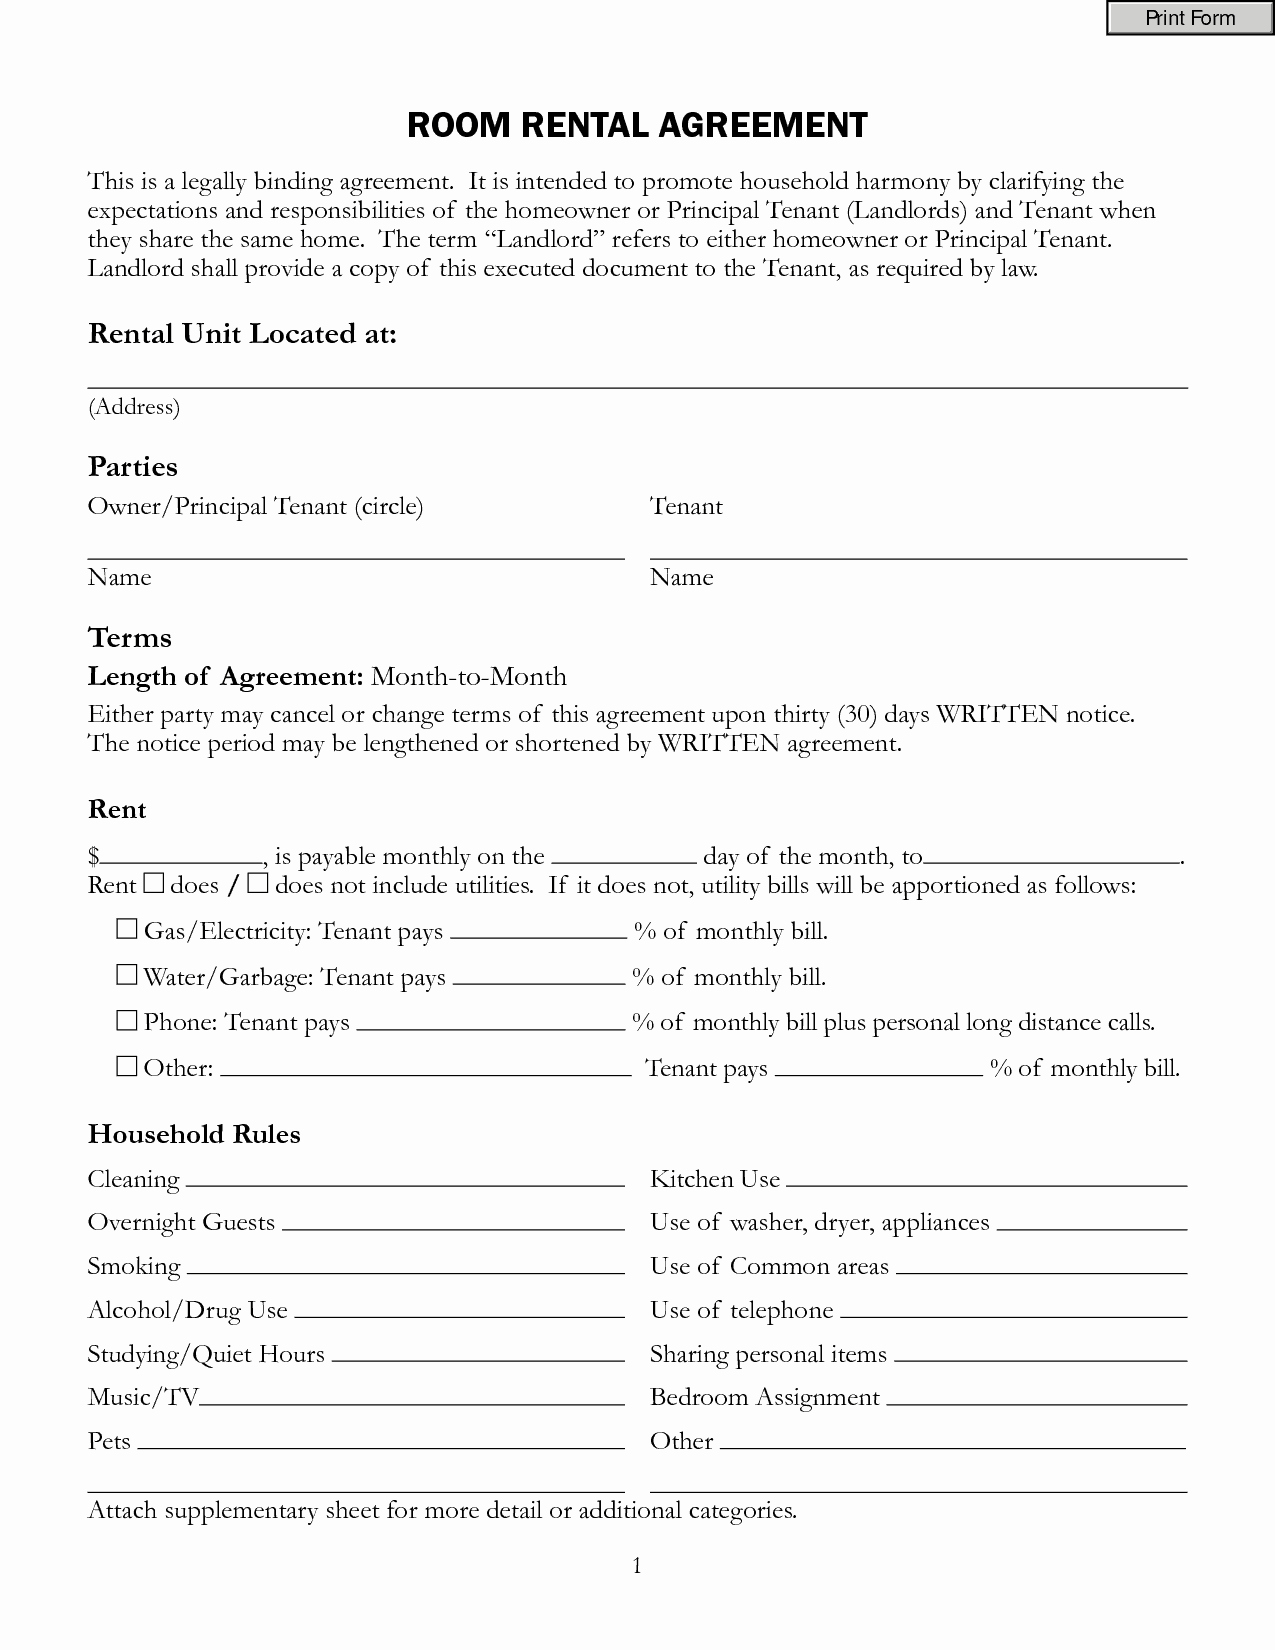 Rental Agreement Template Word Awesome top 5 Resources to Get Free Rental Agreement Templates